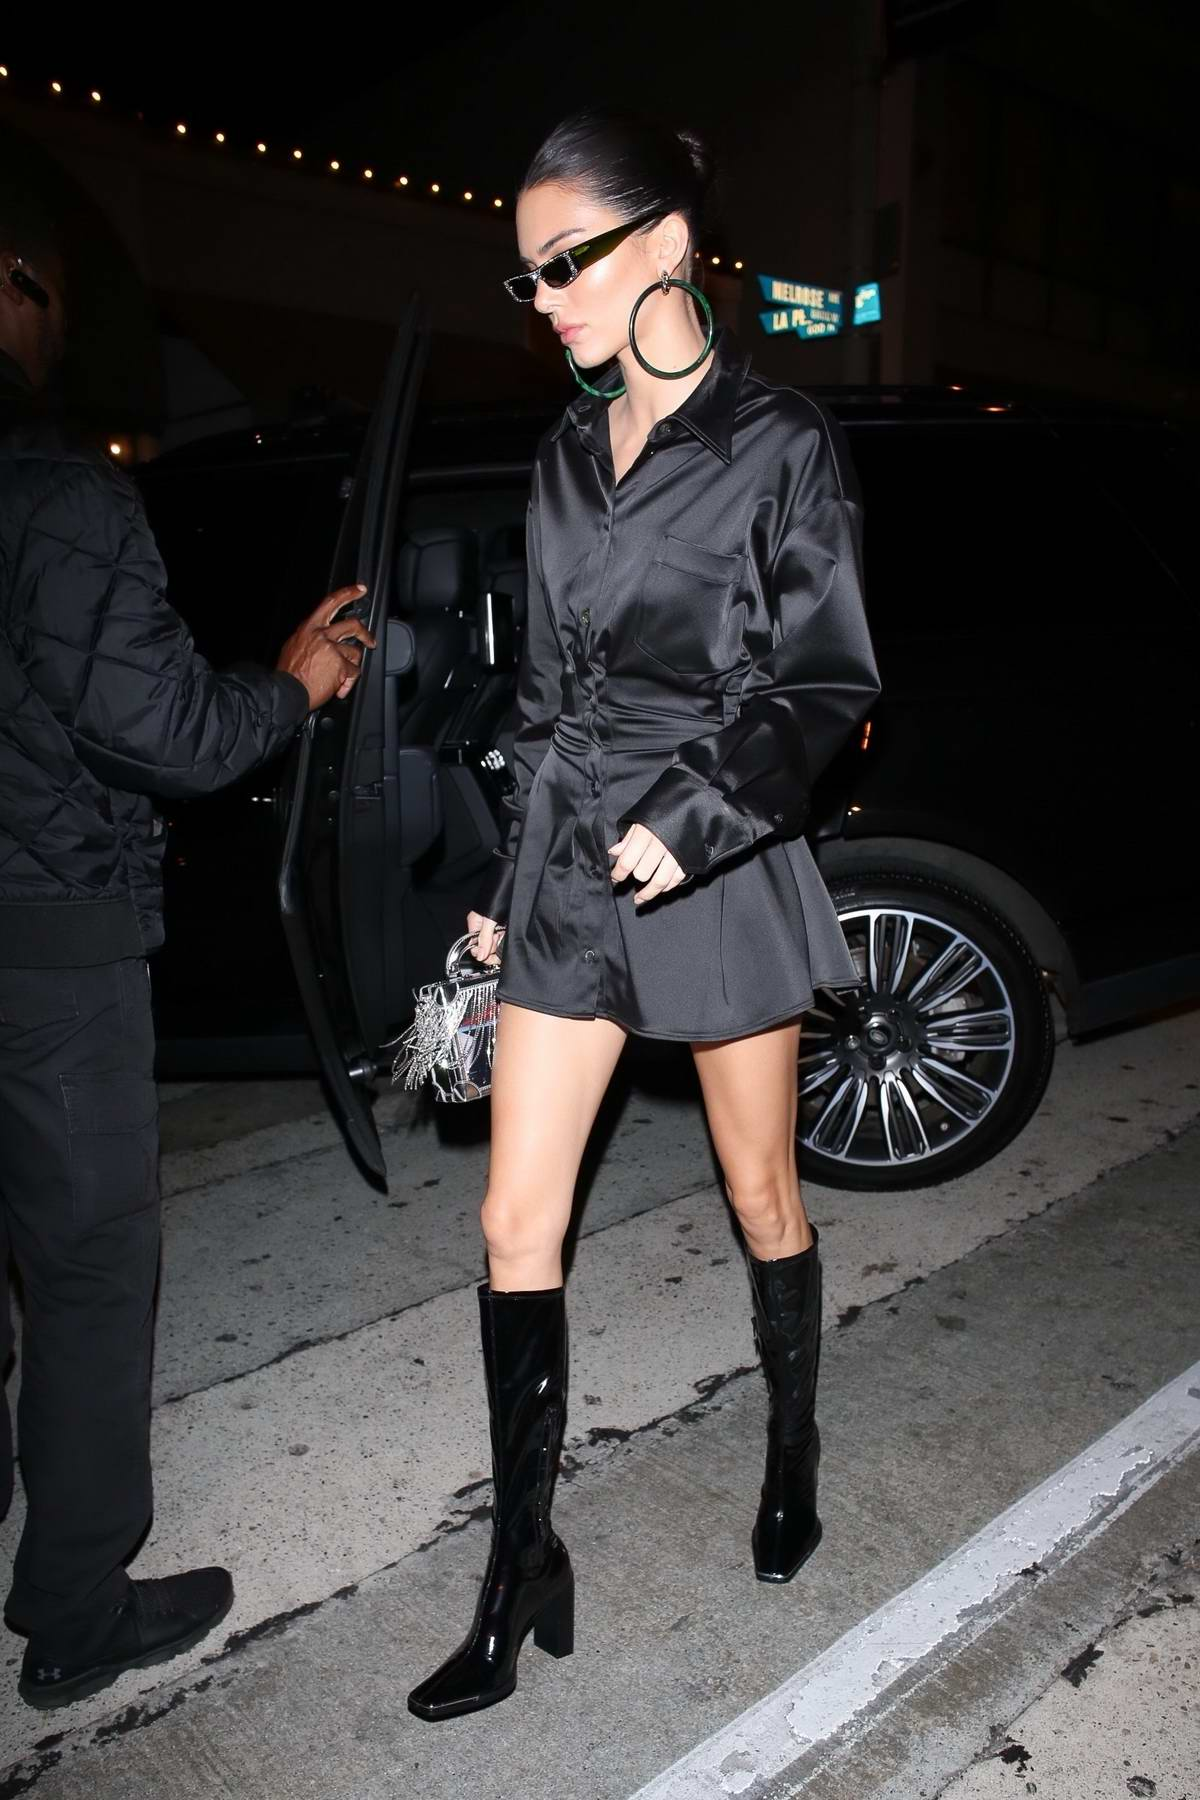 Kendall Jenner rocks all black as she arrives for Larsa Pippen's birthday party at Craig's in West Hollywood, Los Angeles